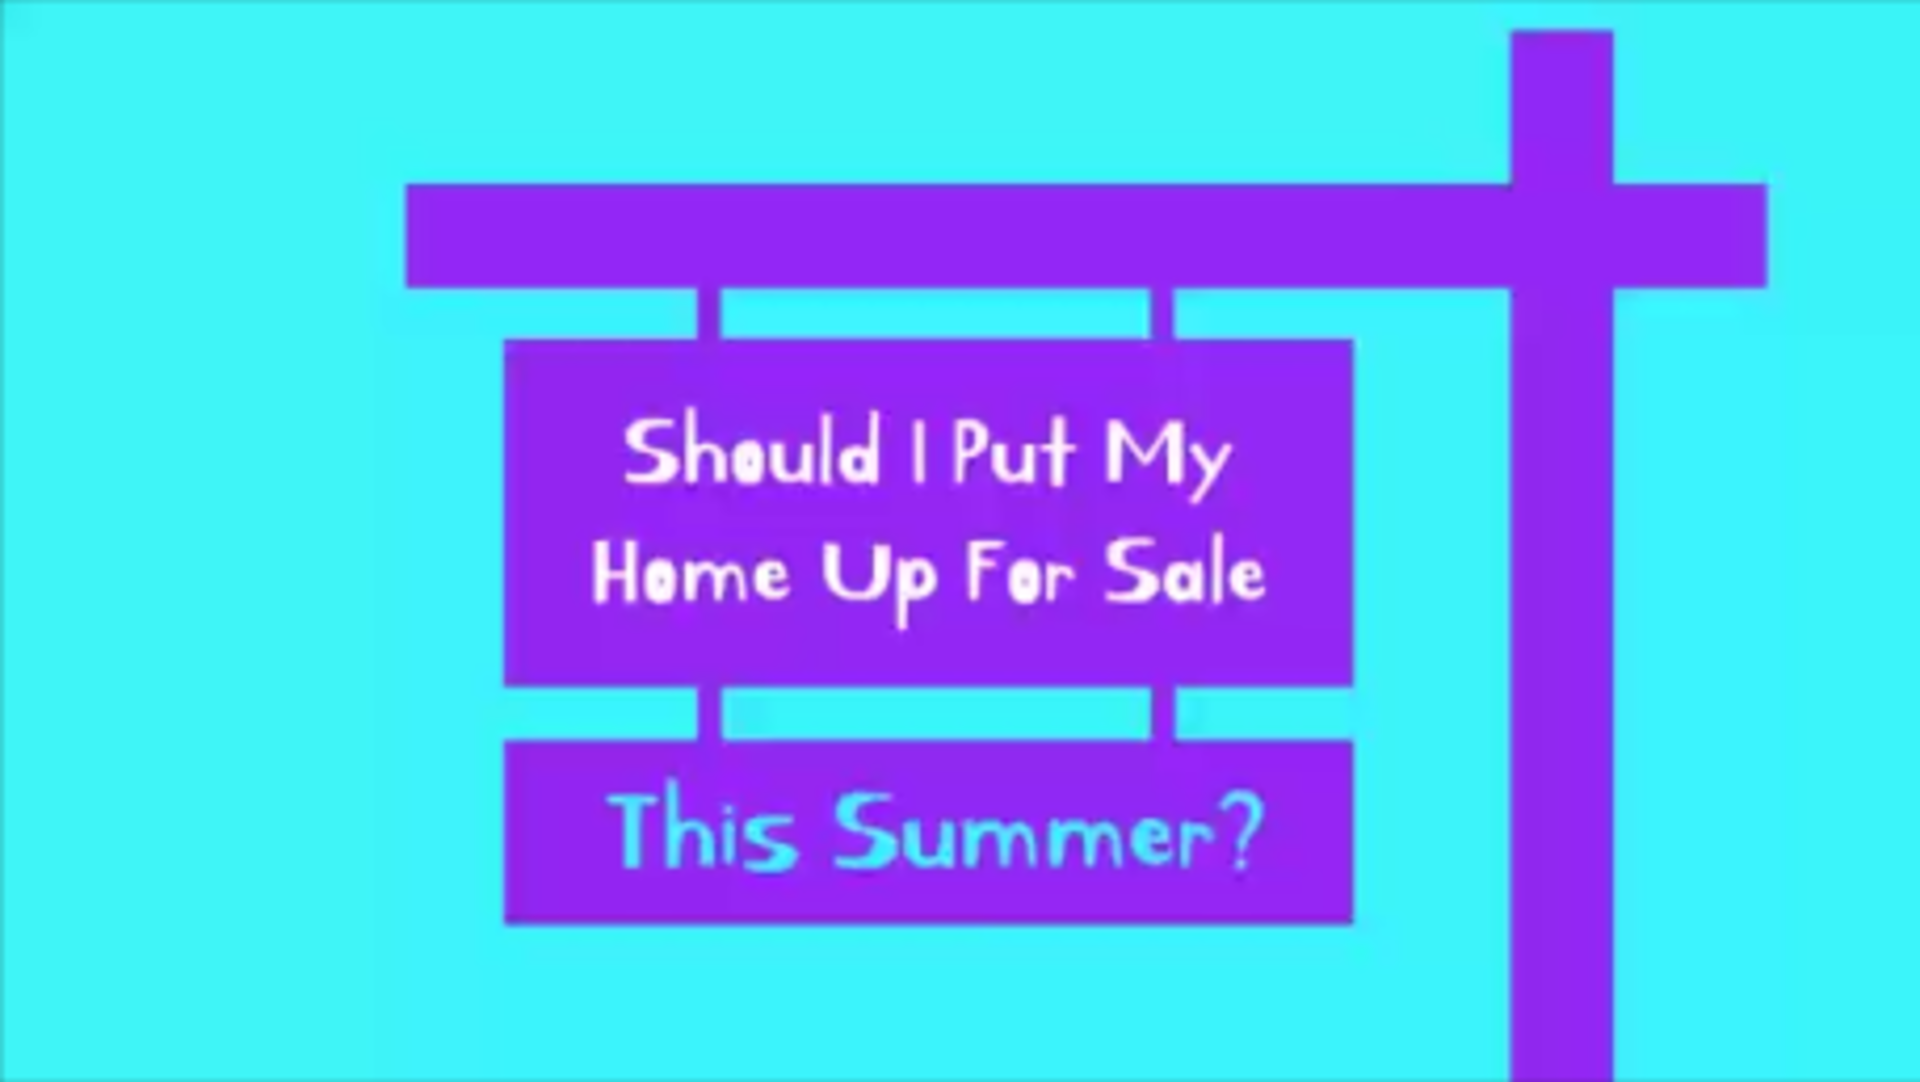 Should I Put My Home Up For Sale This Summer?